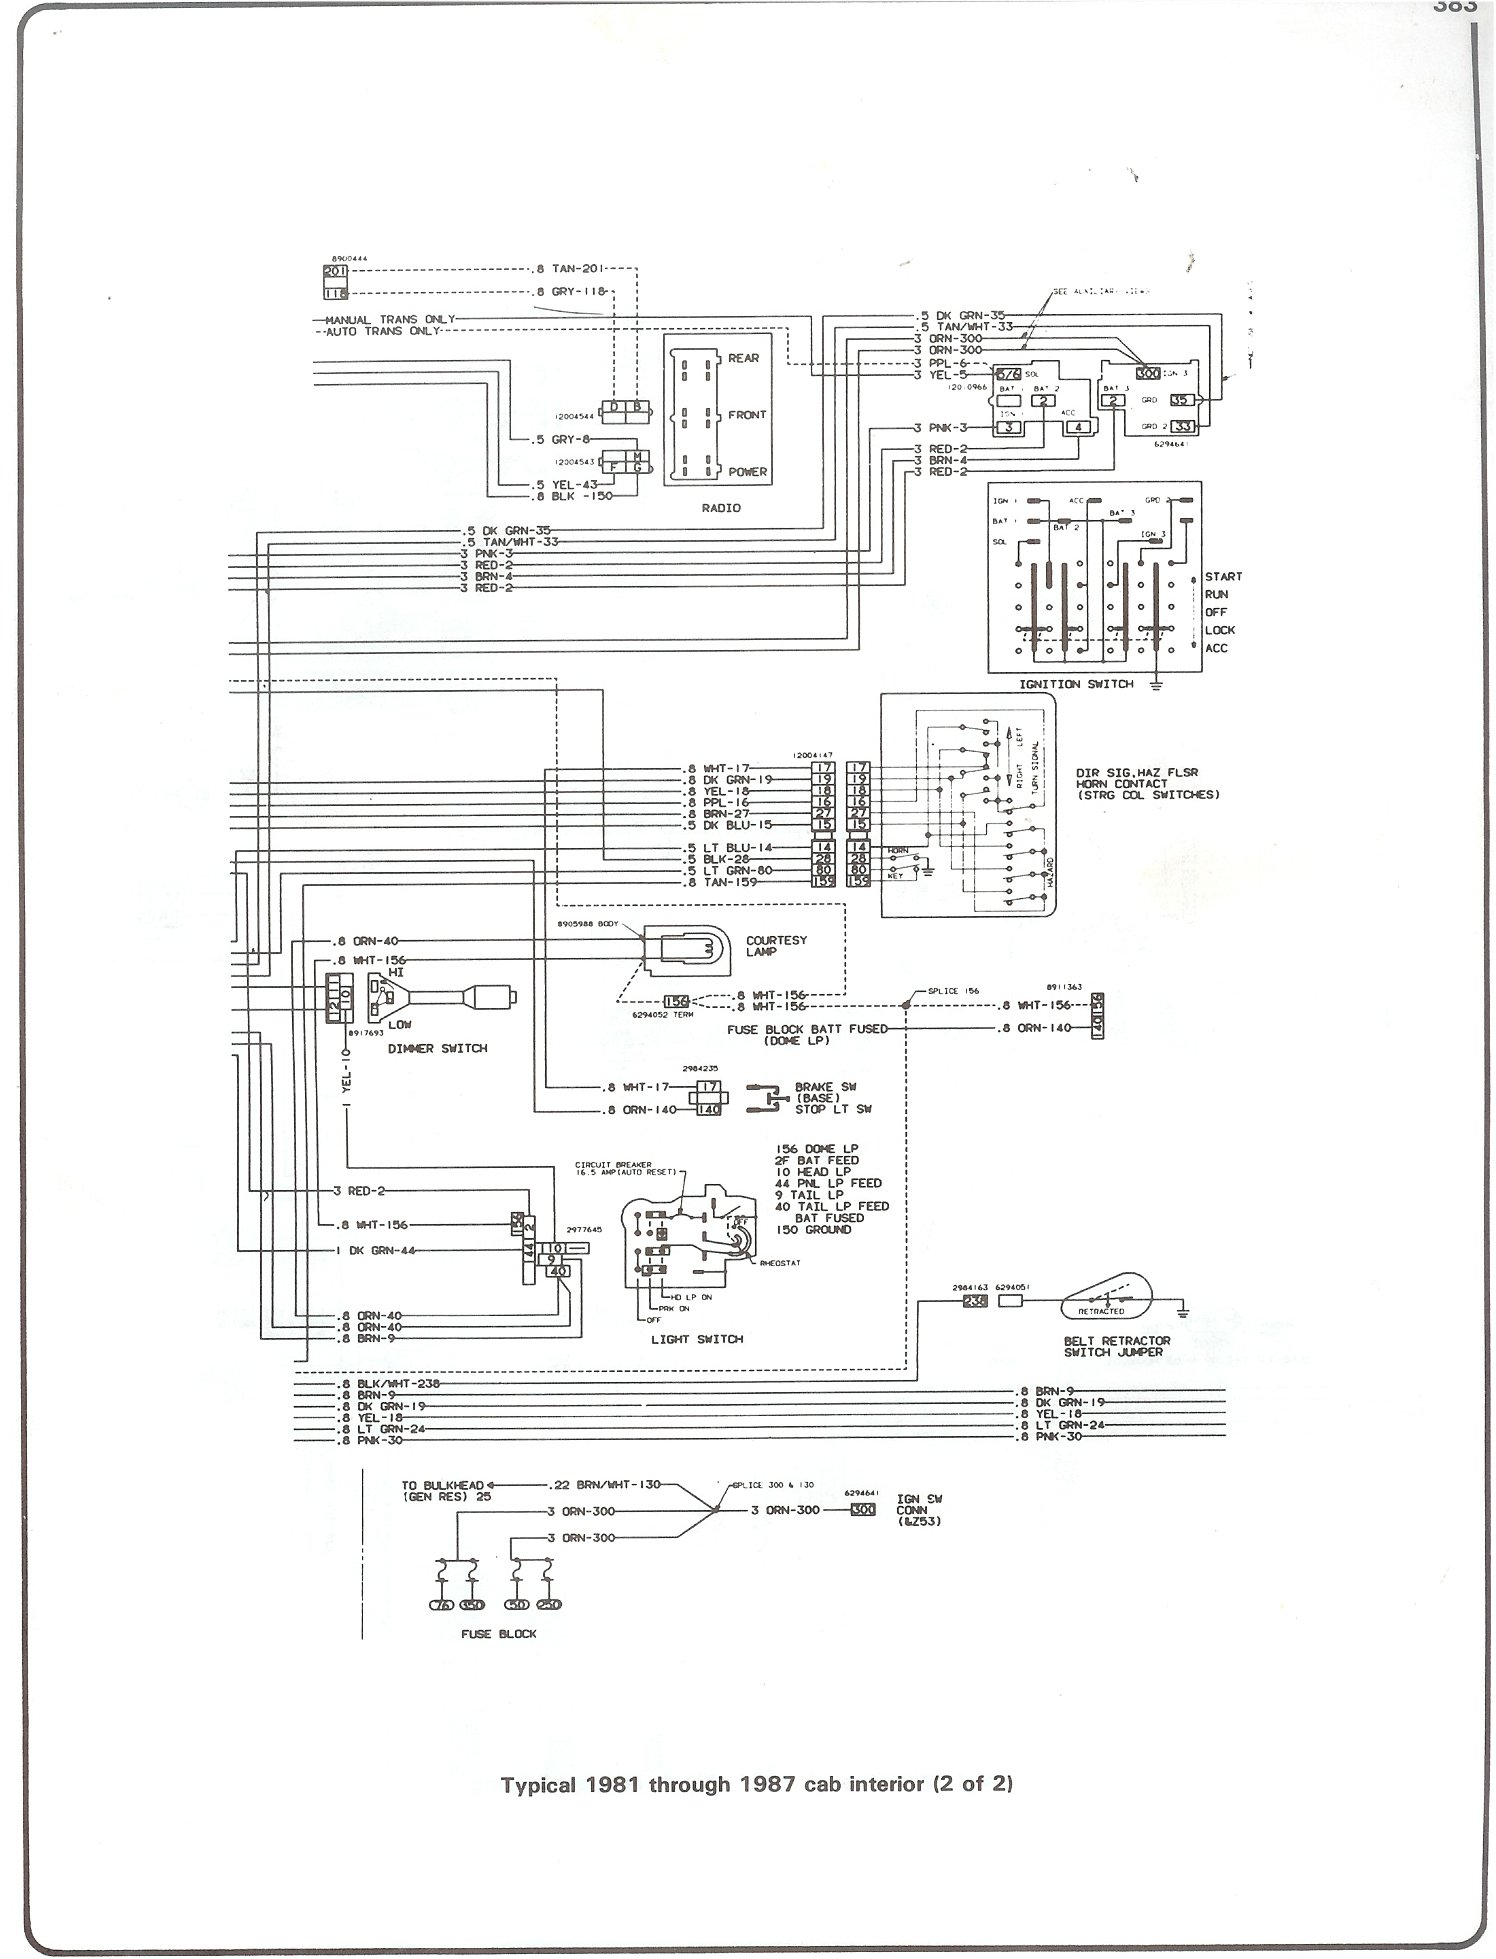 Complete 73 87 Wiring Diagrams 1990 Gmc K1500 4wd Diagram 81 Cab Interior Page 2